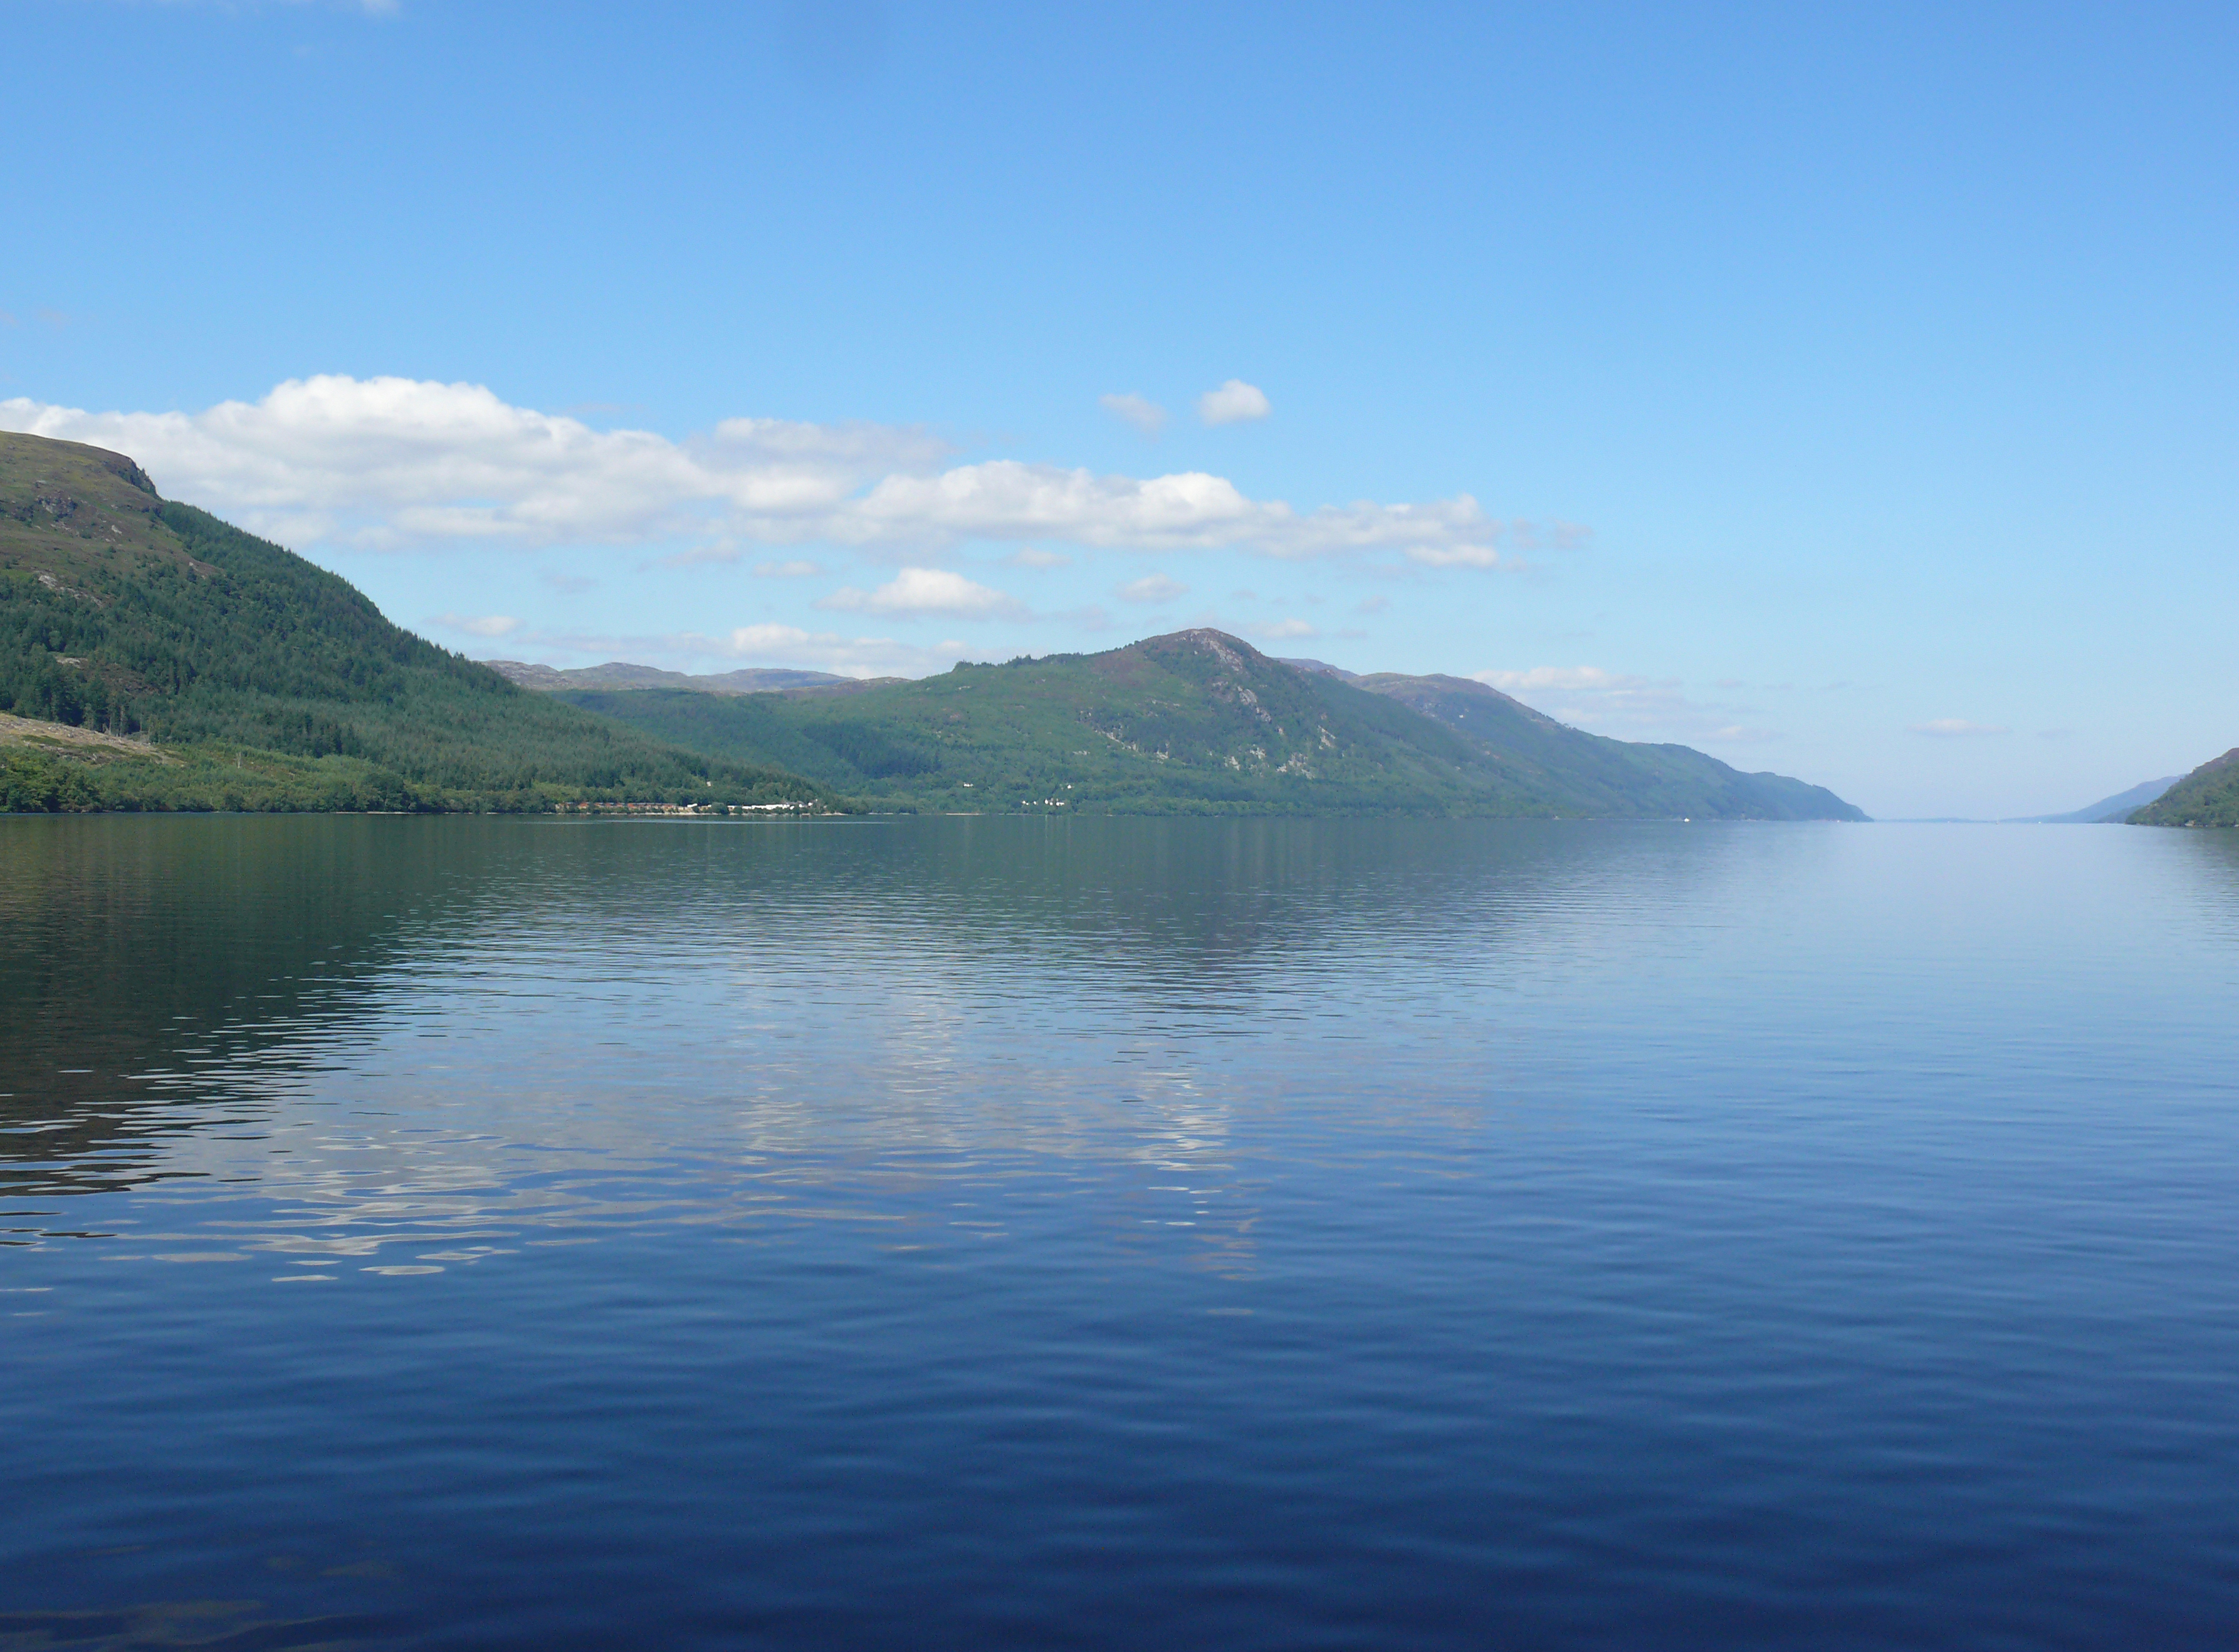 loch ness big and beautiful singles Our day in beautiful surrounds comes to an end  scotland's infamous loch ness en route to  we are delighted to hear you enjoyed your best of scotland vacation.